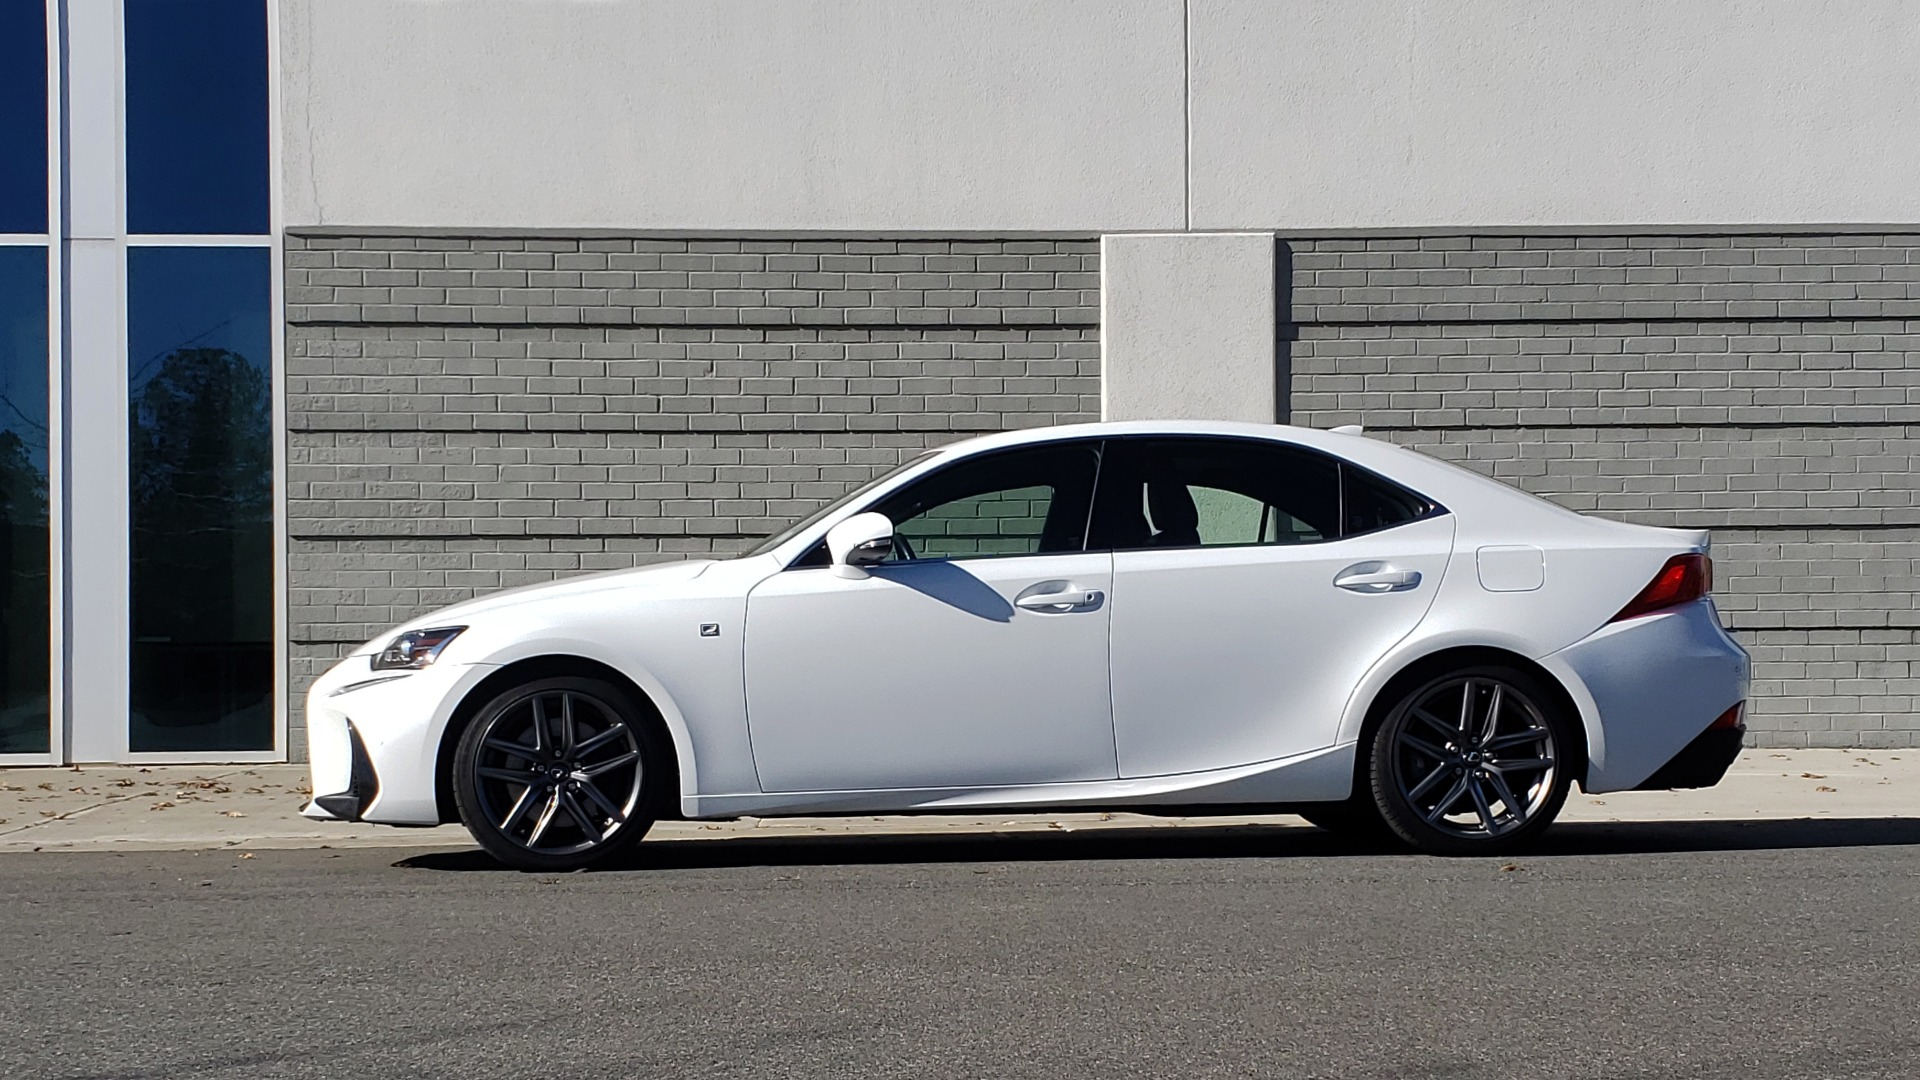 Used 2018 Lexus IS 300 F-SPORT / BSM / SUNROOF / REARVIEW / 18IN WHEELS for sale Sold at Formula Imports in Charlotte NC 28227 2